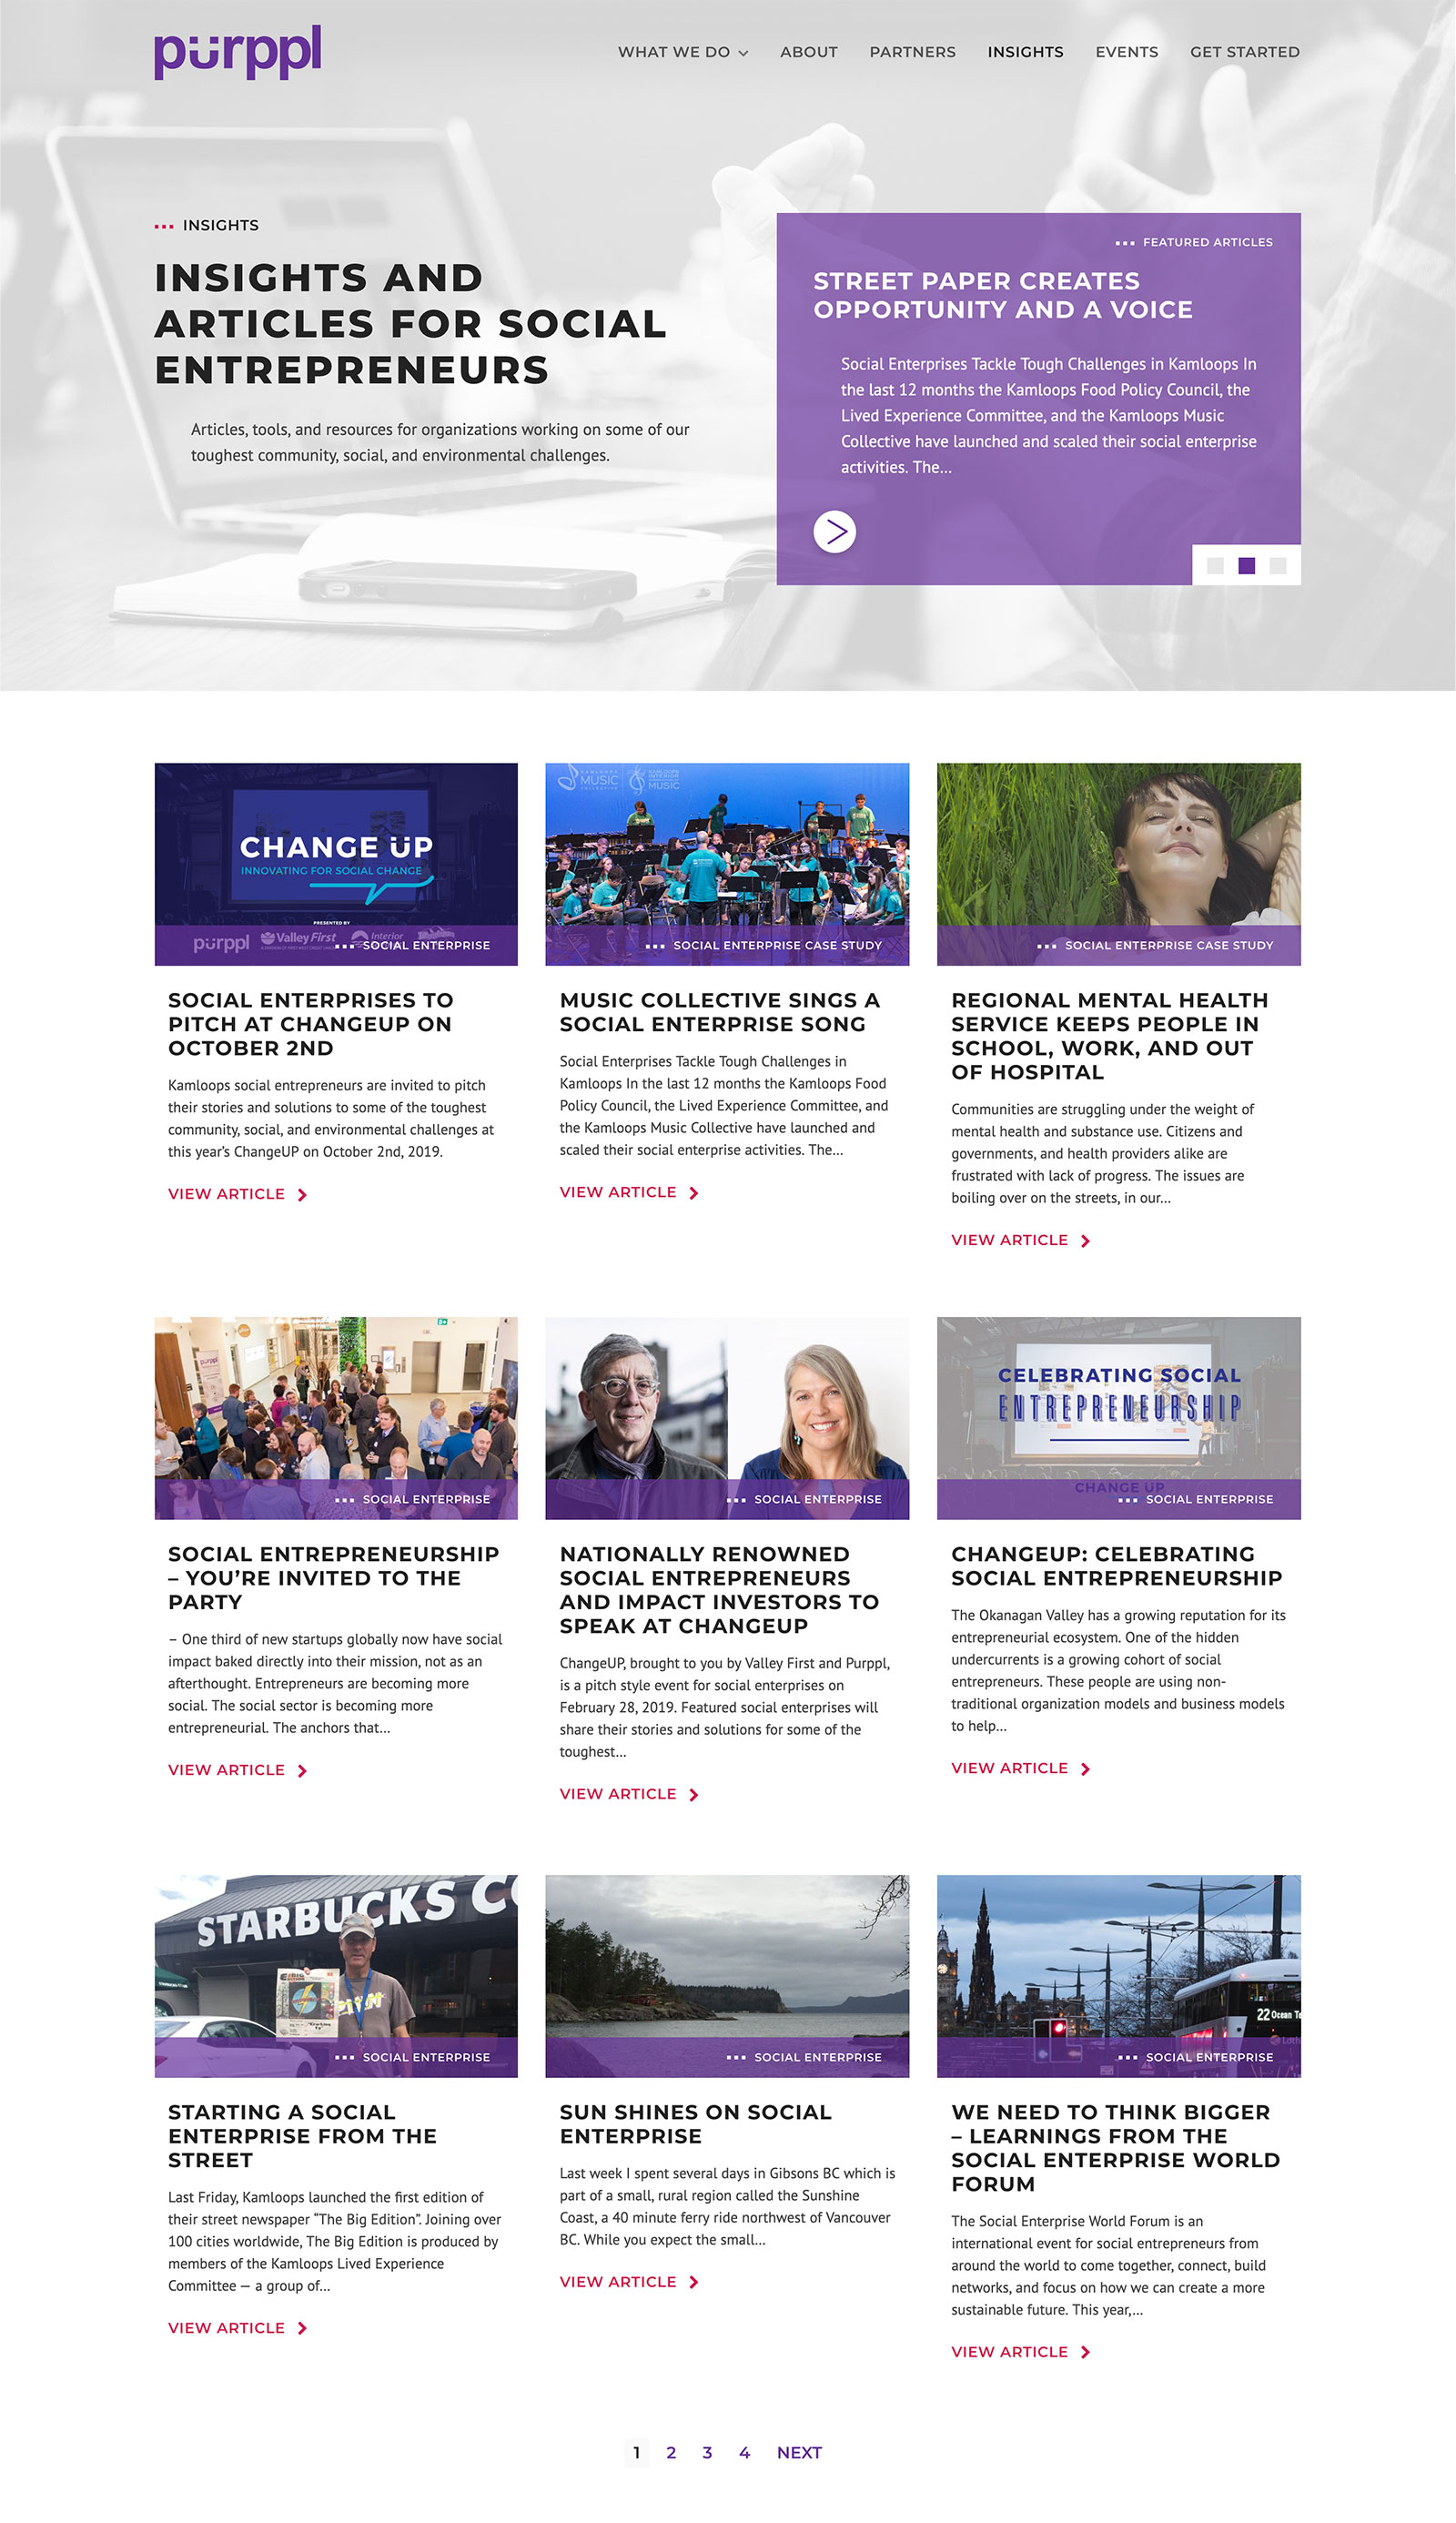 Purppl Blog web design by Catalyst Marketing